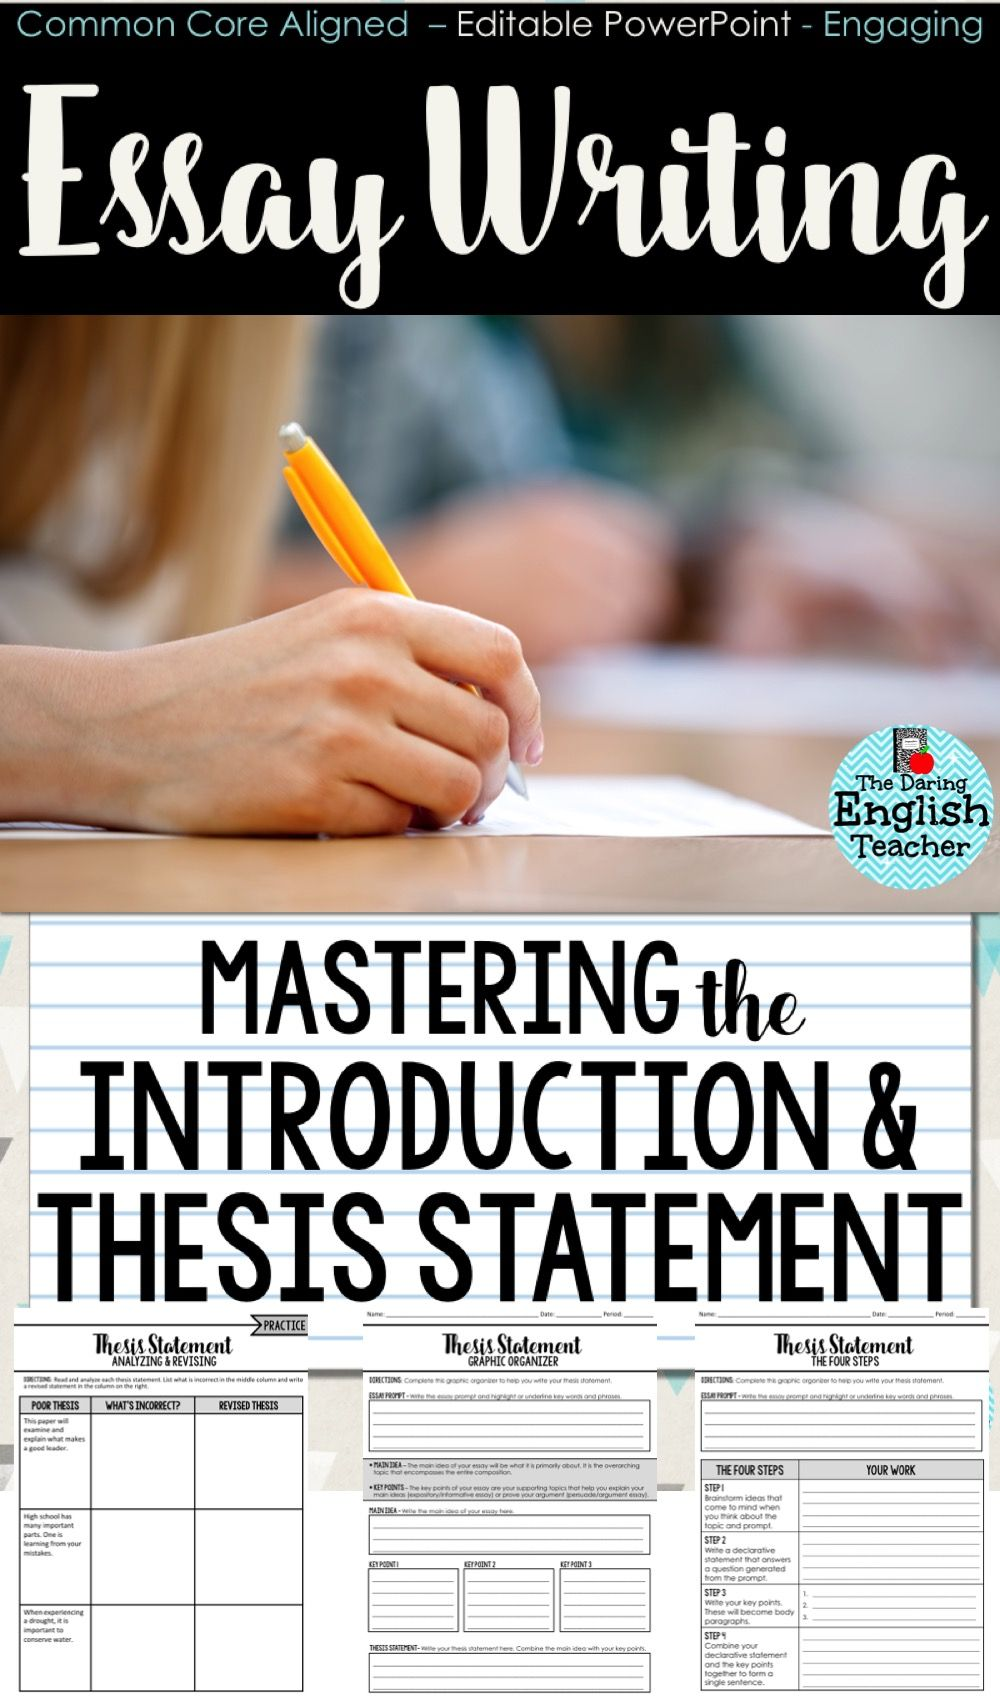 Essay Writing Mastering The Introduction And Thesi Statement Teach Your Middle School High English Teaching Body Paragraphs How To Write A For Research Paper Ppt